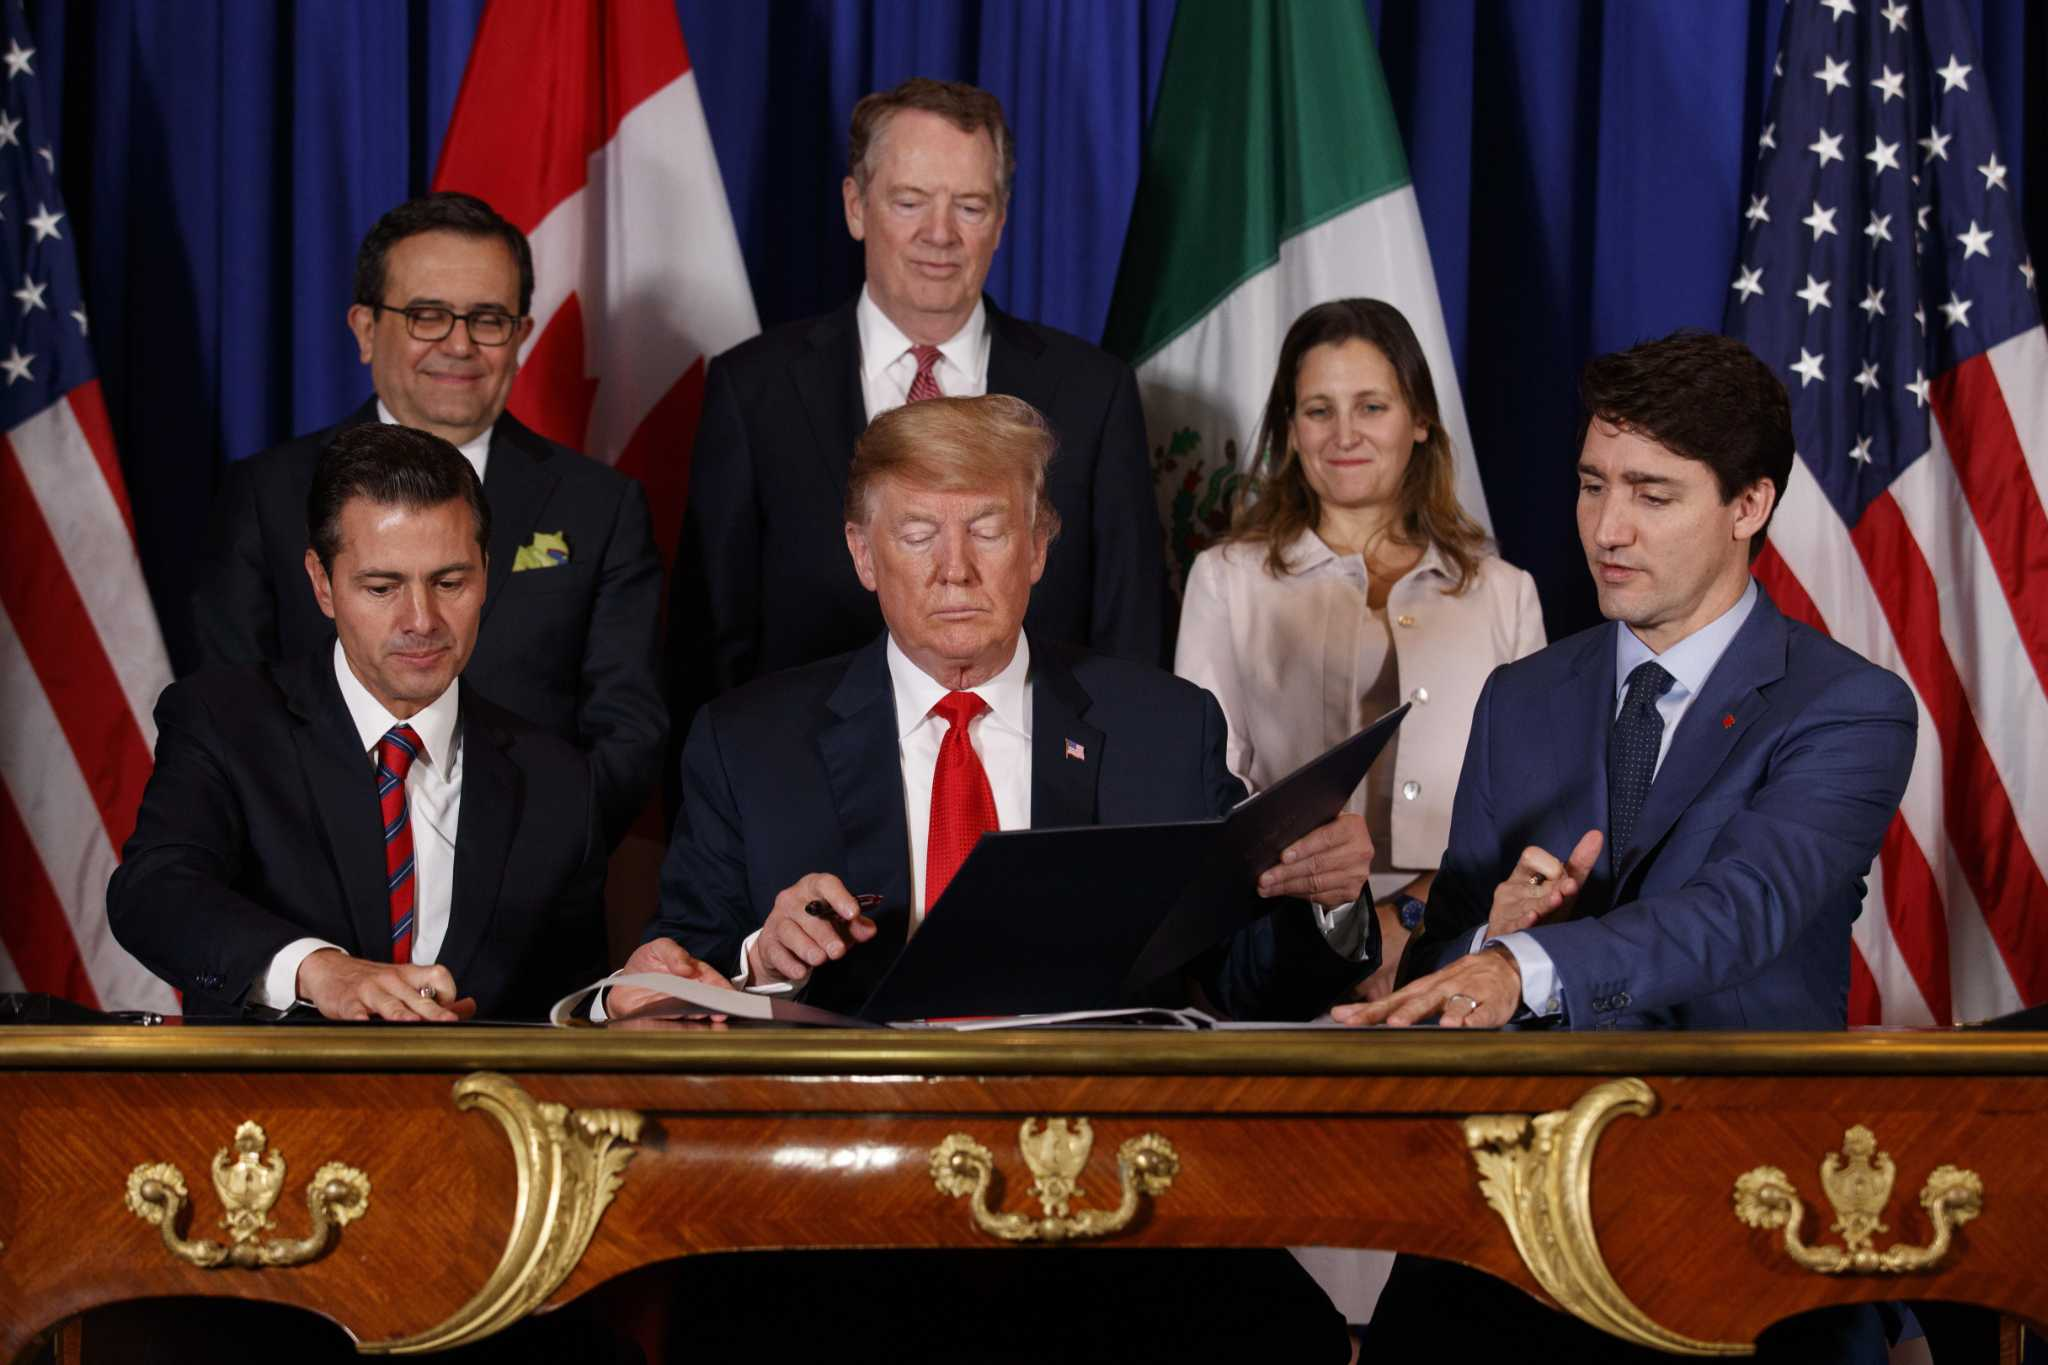 houstonchronicle.com - Erin Douglas - U.S. exports get more competitive in NAFTA countries while losing ground in China